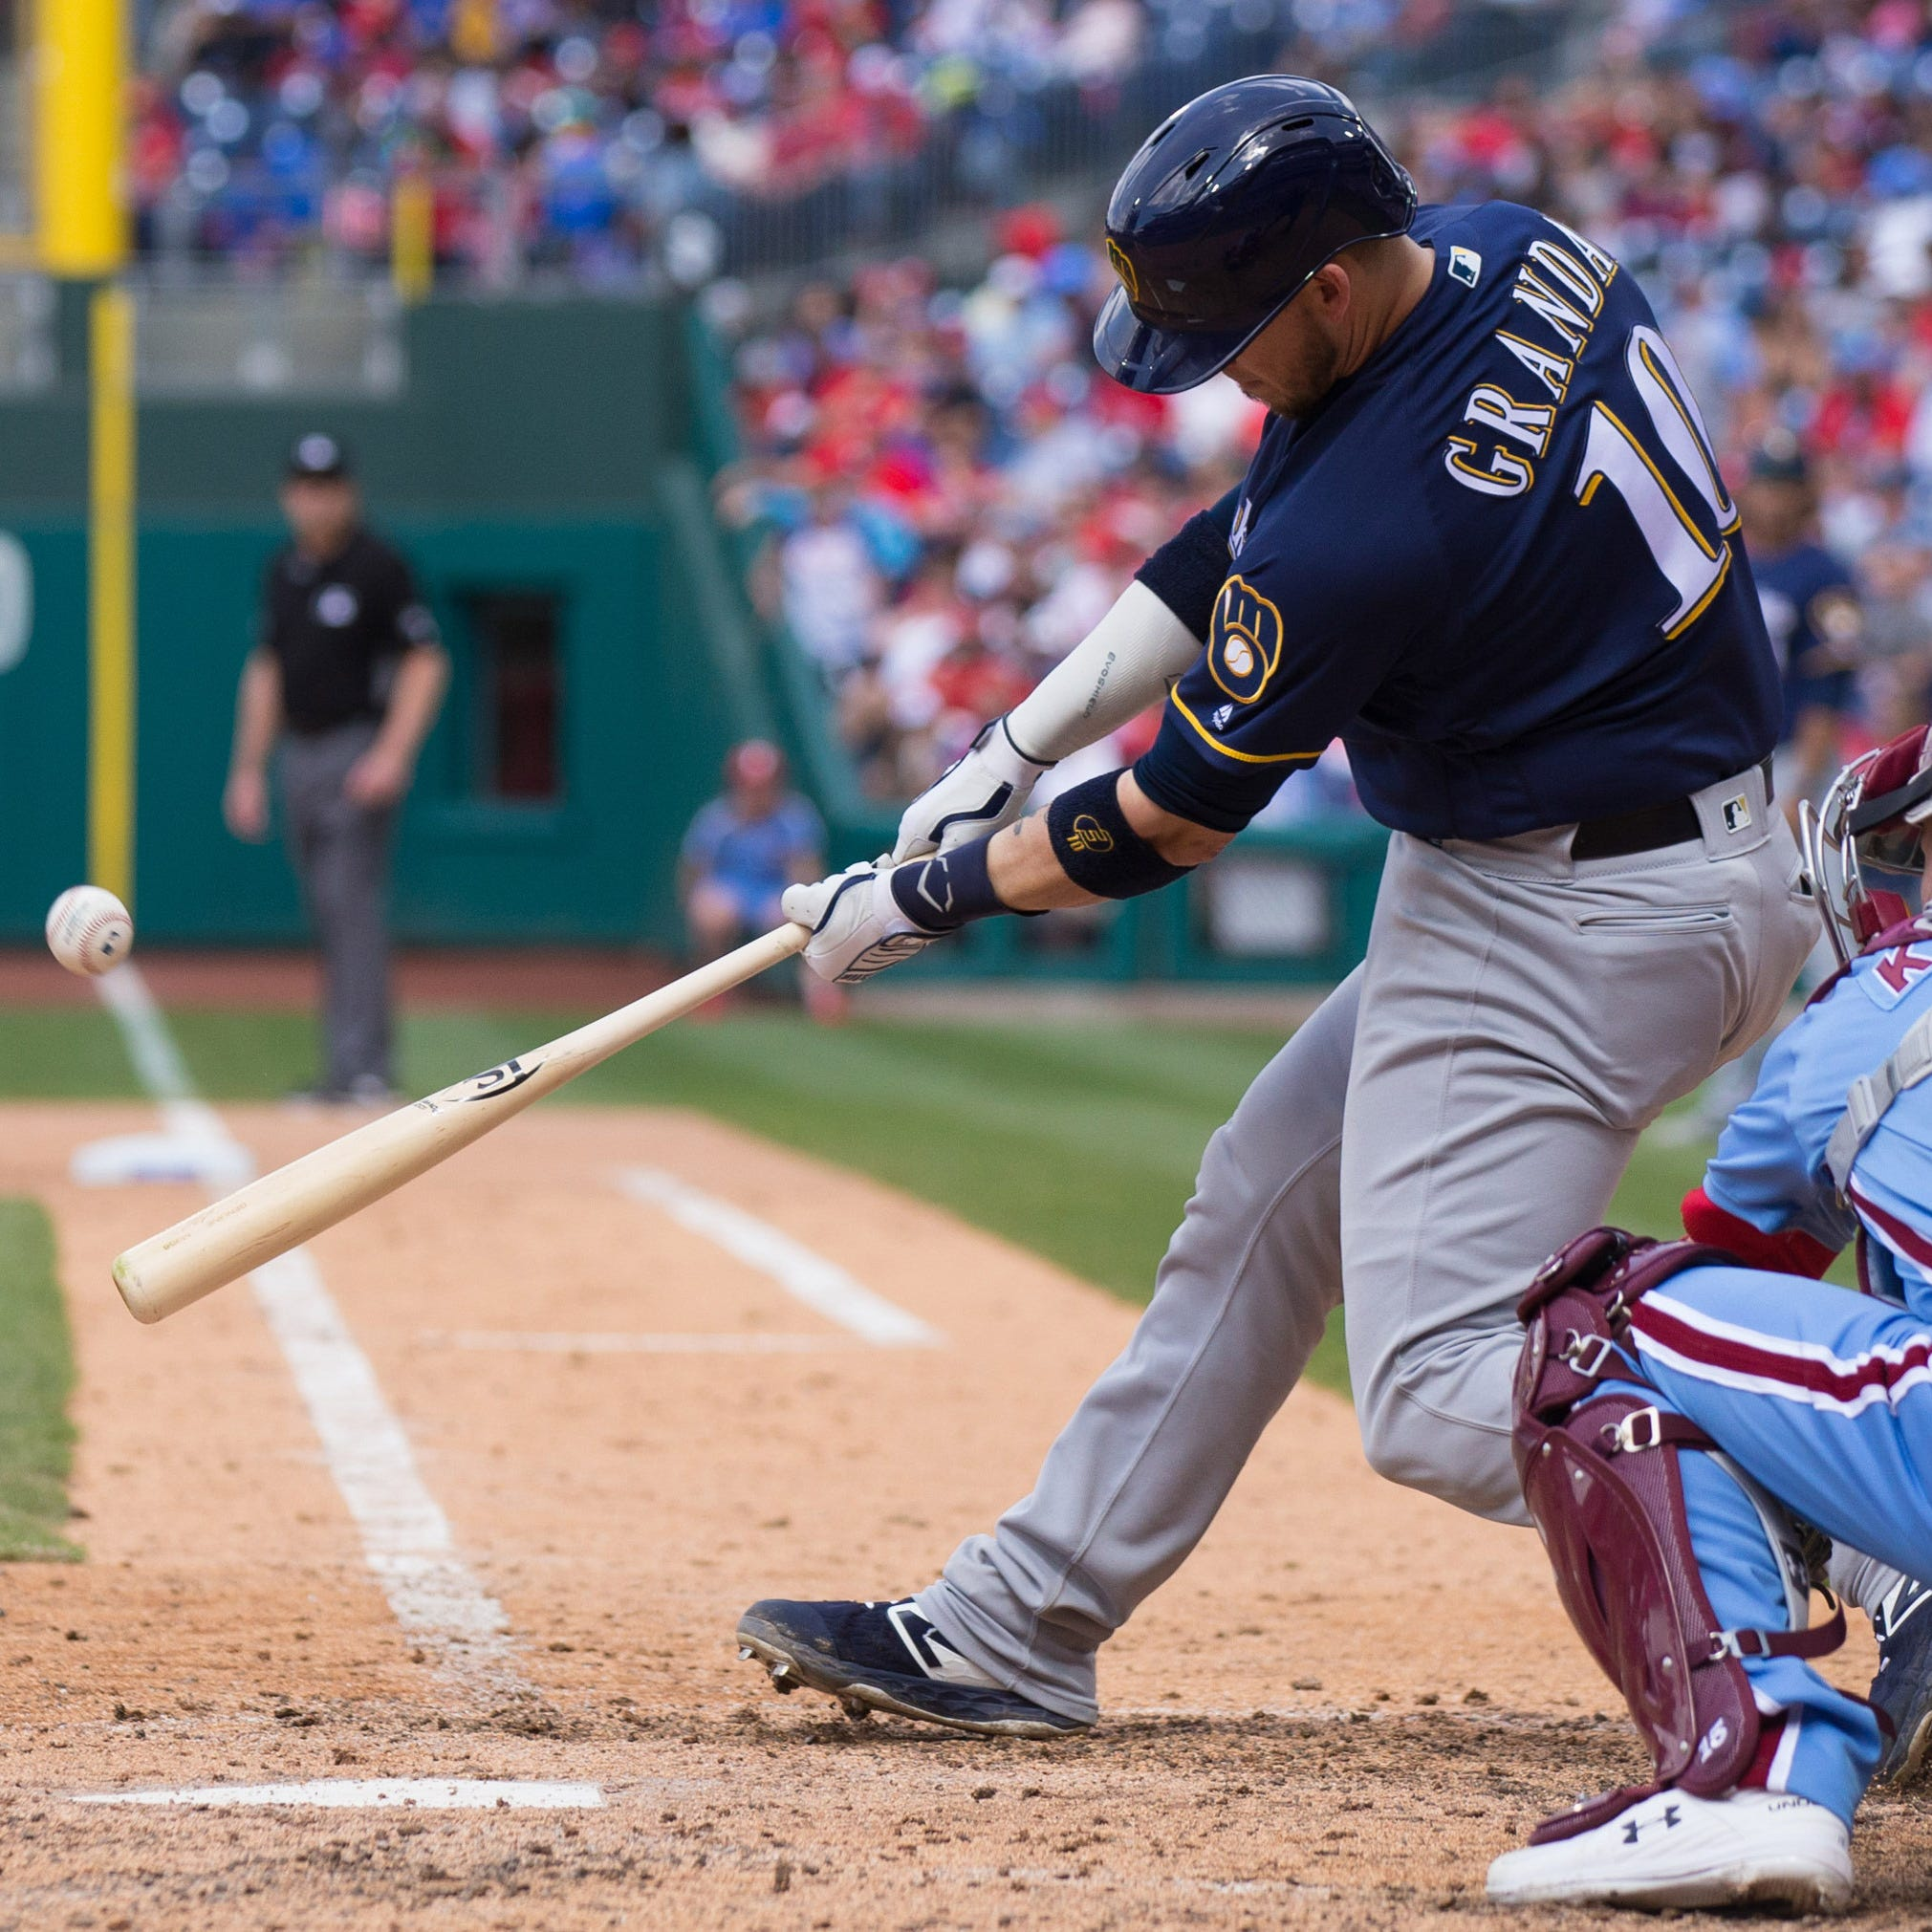 Following the lead of Christian Yelich, the Brewers' deep lineup kept coming at the Phillies